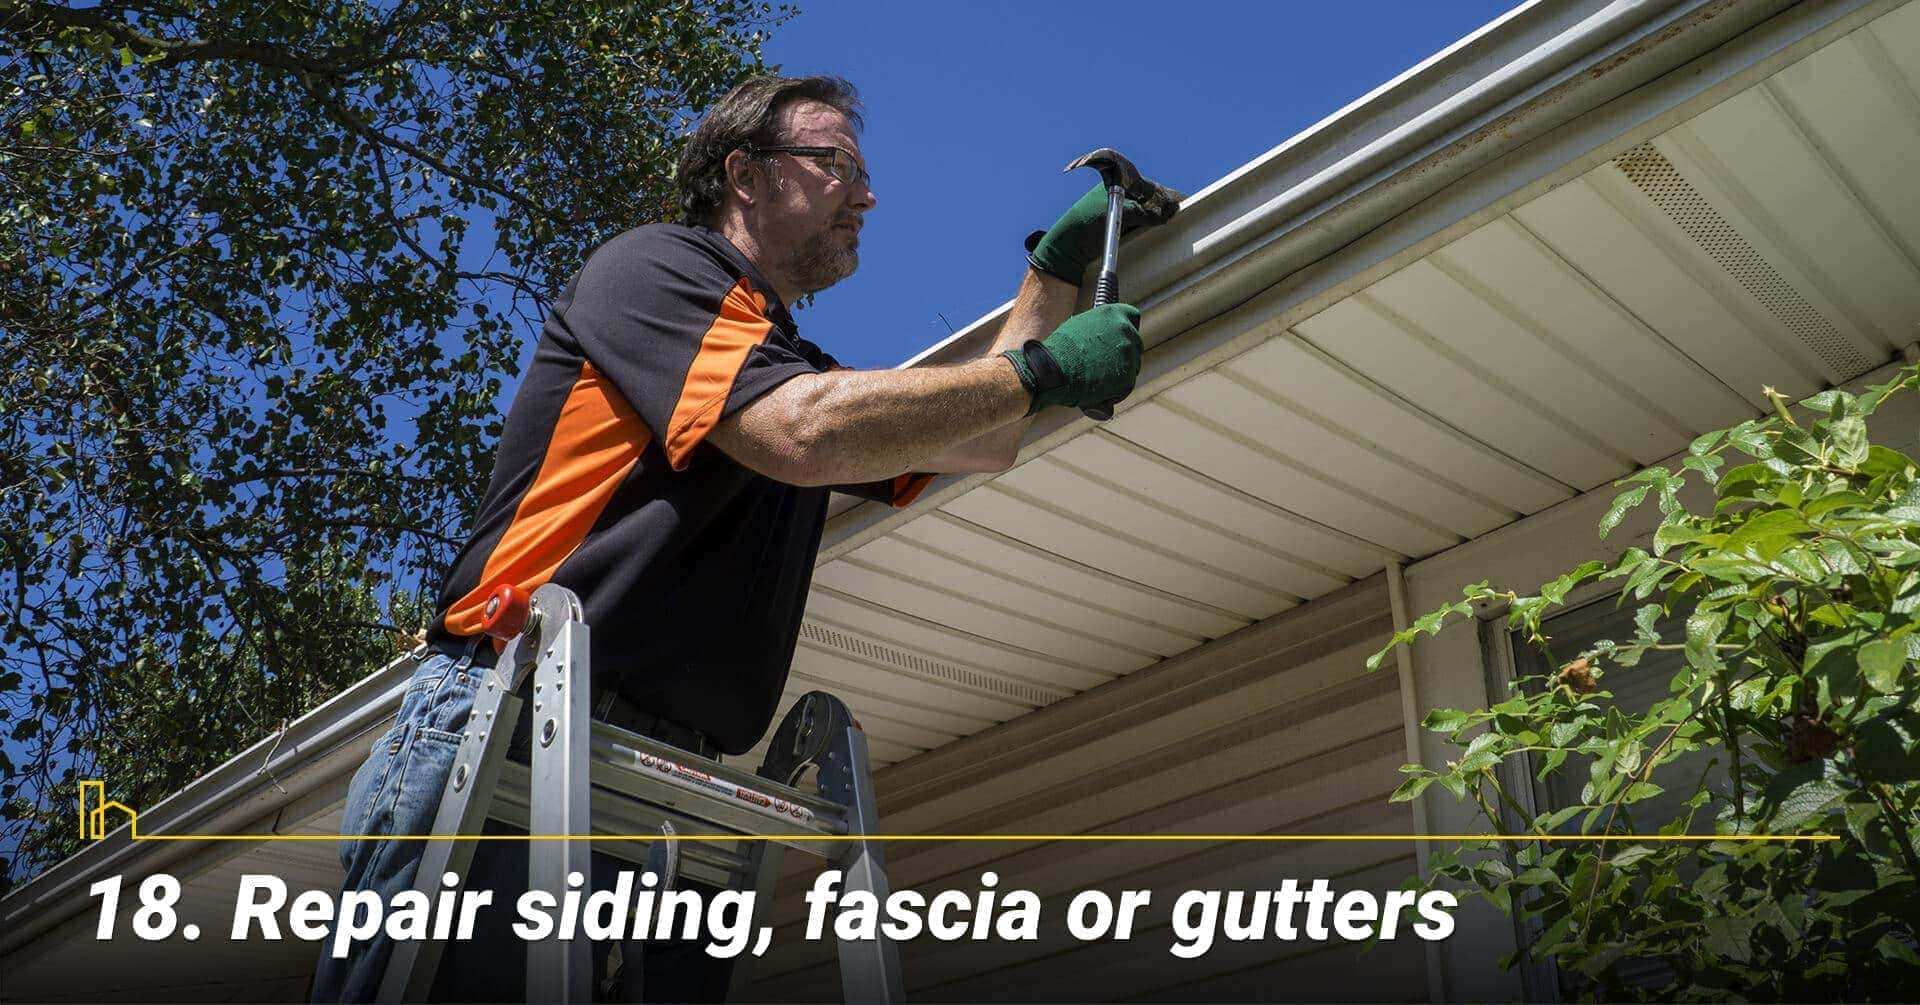 Repair siding, fascia or gutters; maintain the exterior of the house